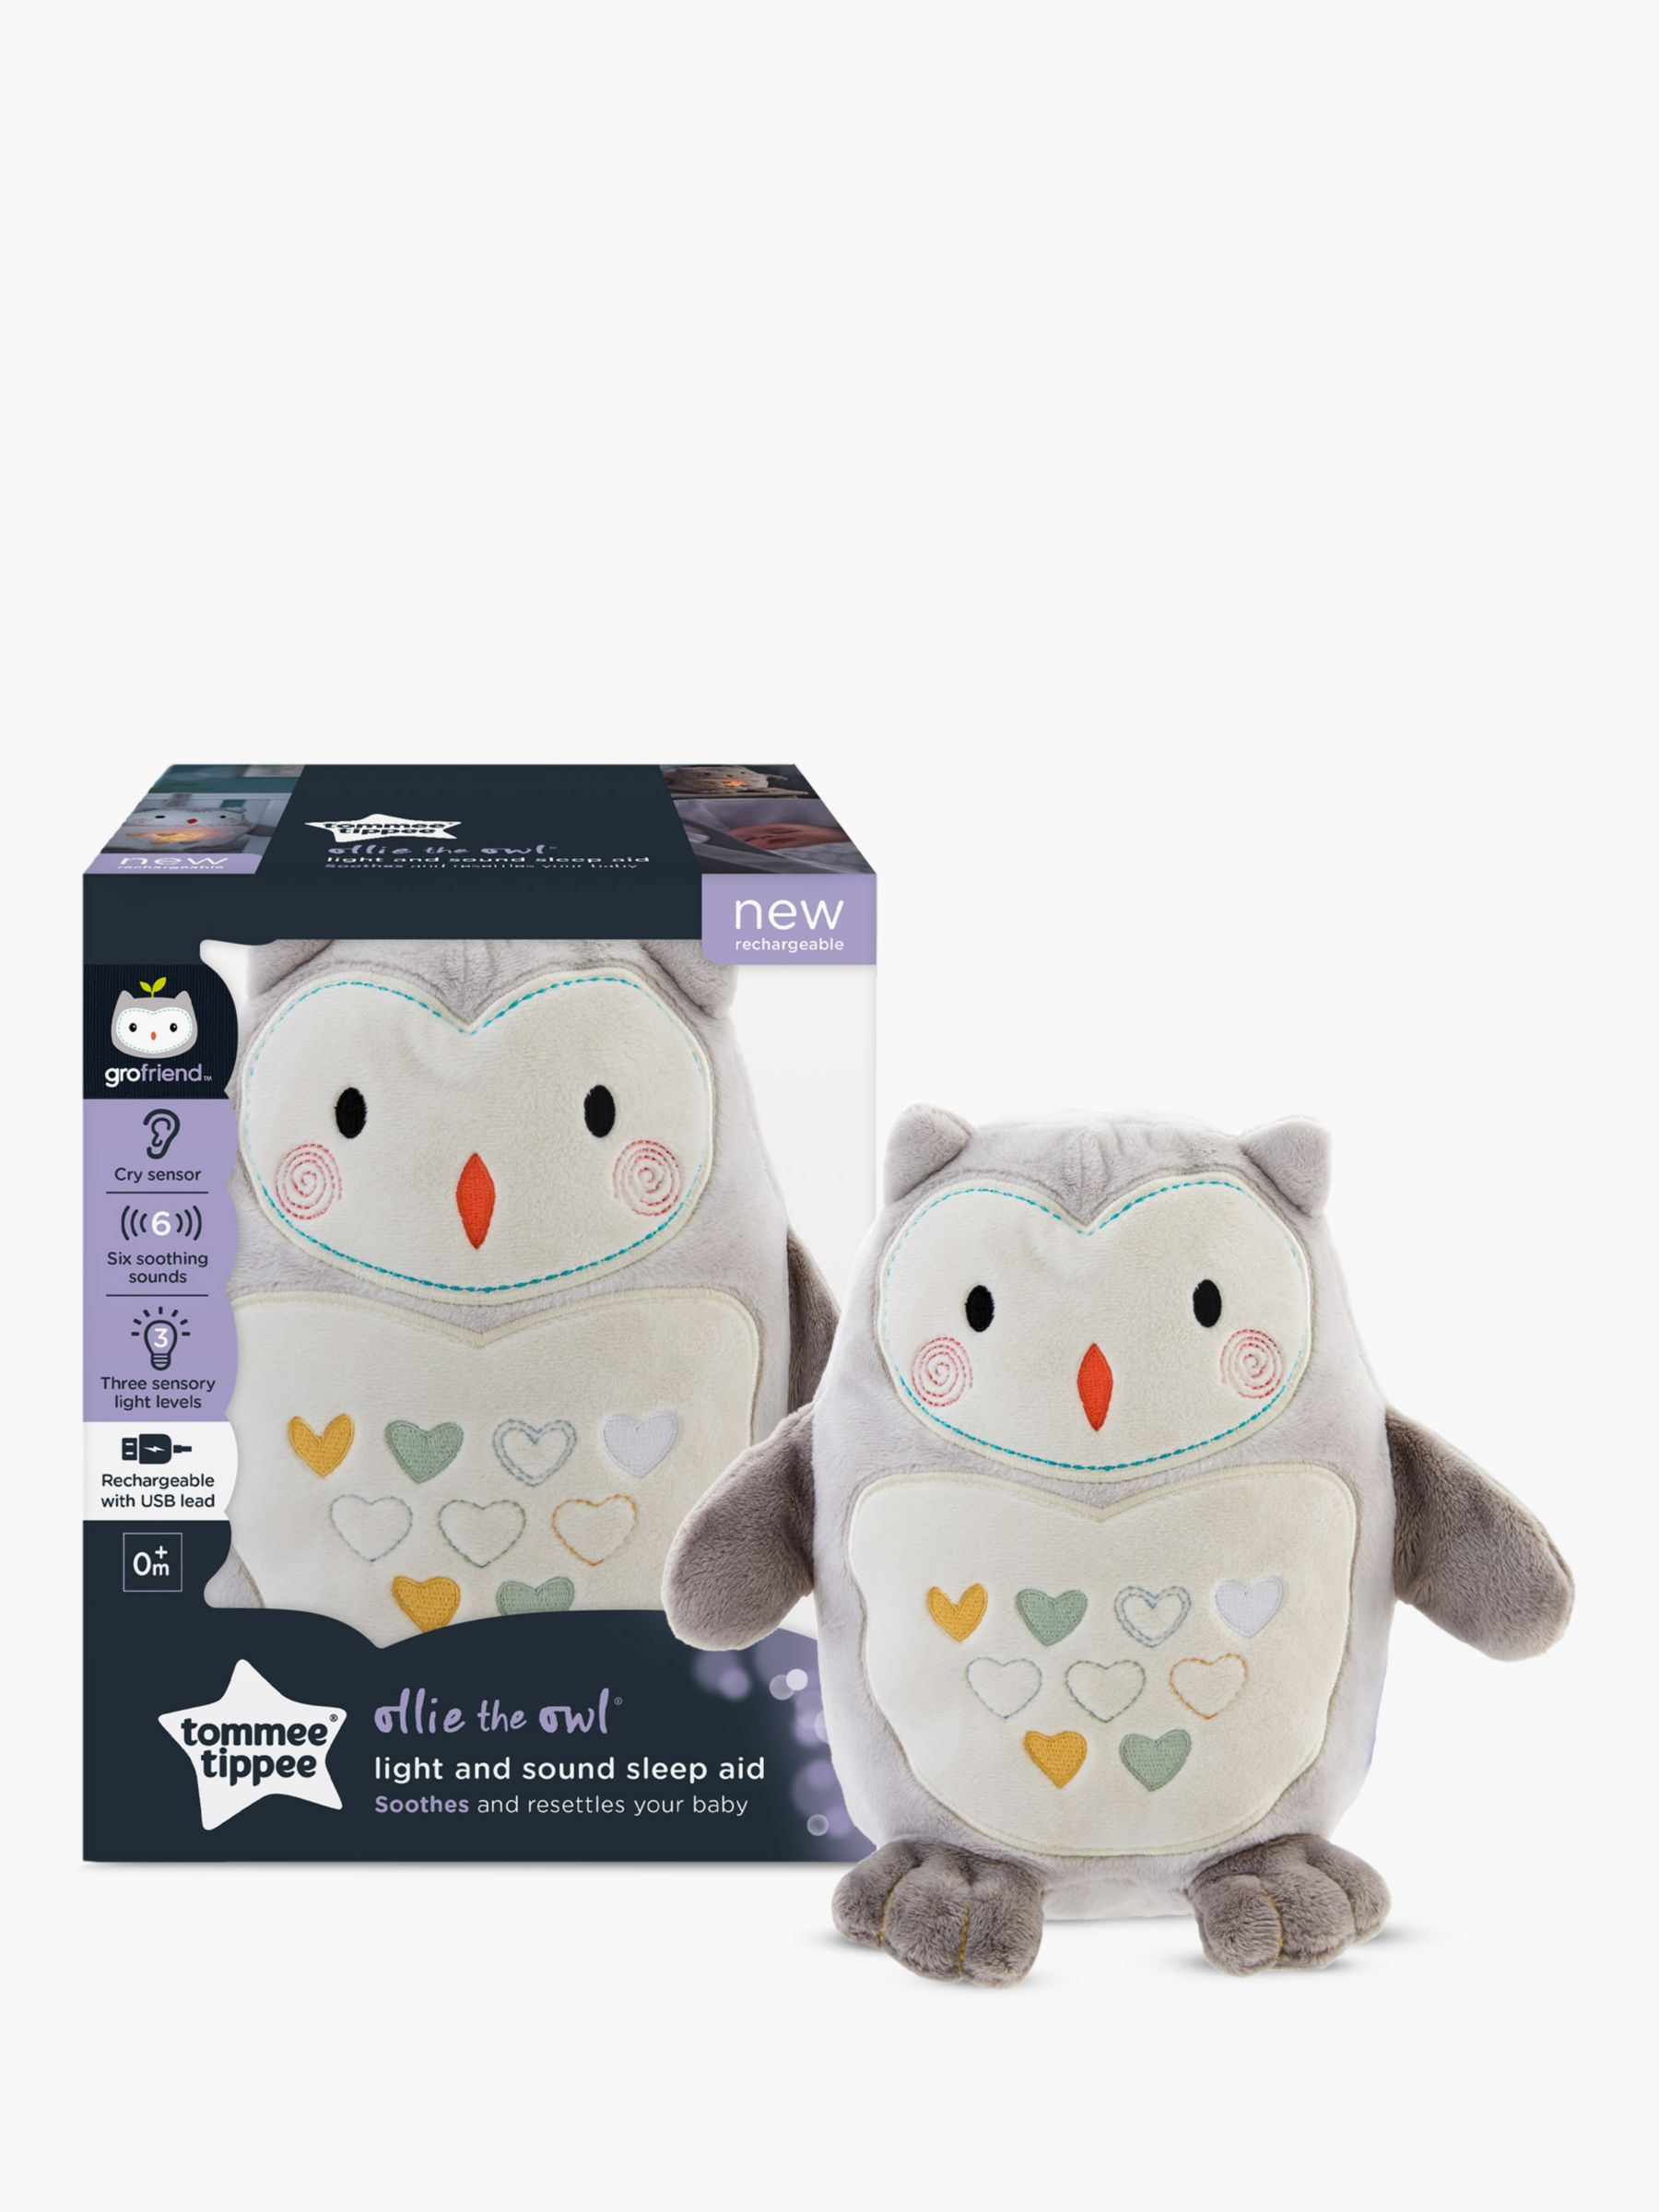 Tommee Tippee Tommee Tippee Ollie the Owl Rechargeable Light and Sound Sleep Aid